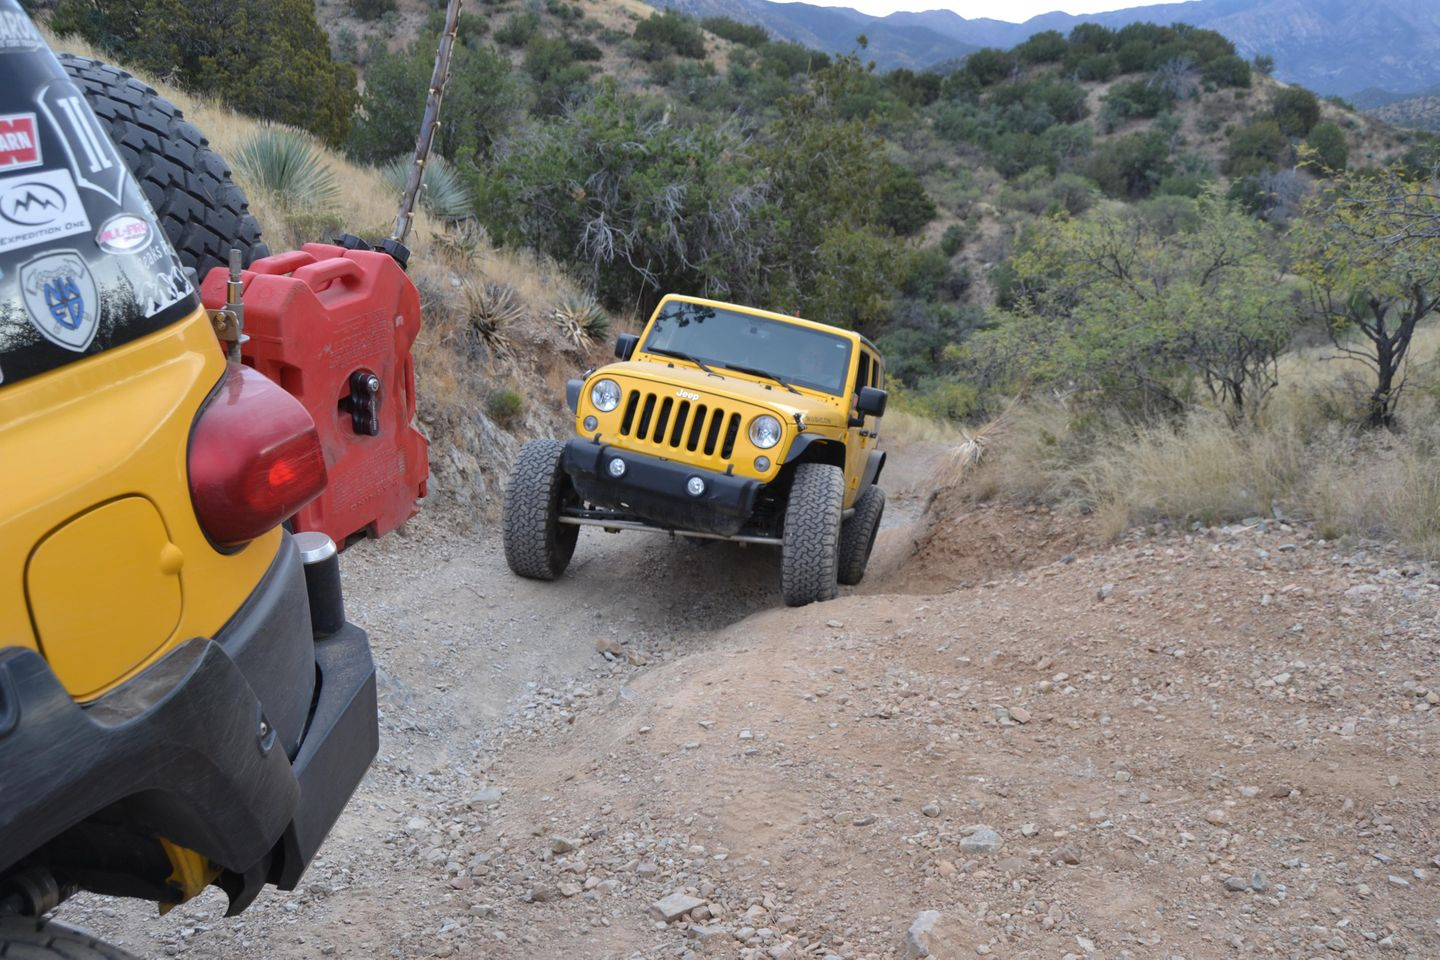 """Charouleau Gap / FR# 736 - Waypoint 29: Mine Access Road and Difficult Deep """"V"""" Hill Climb"""